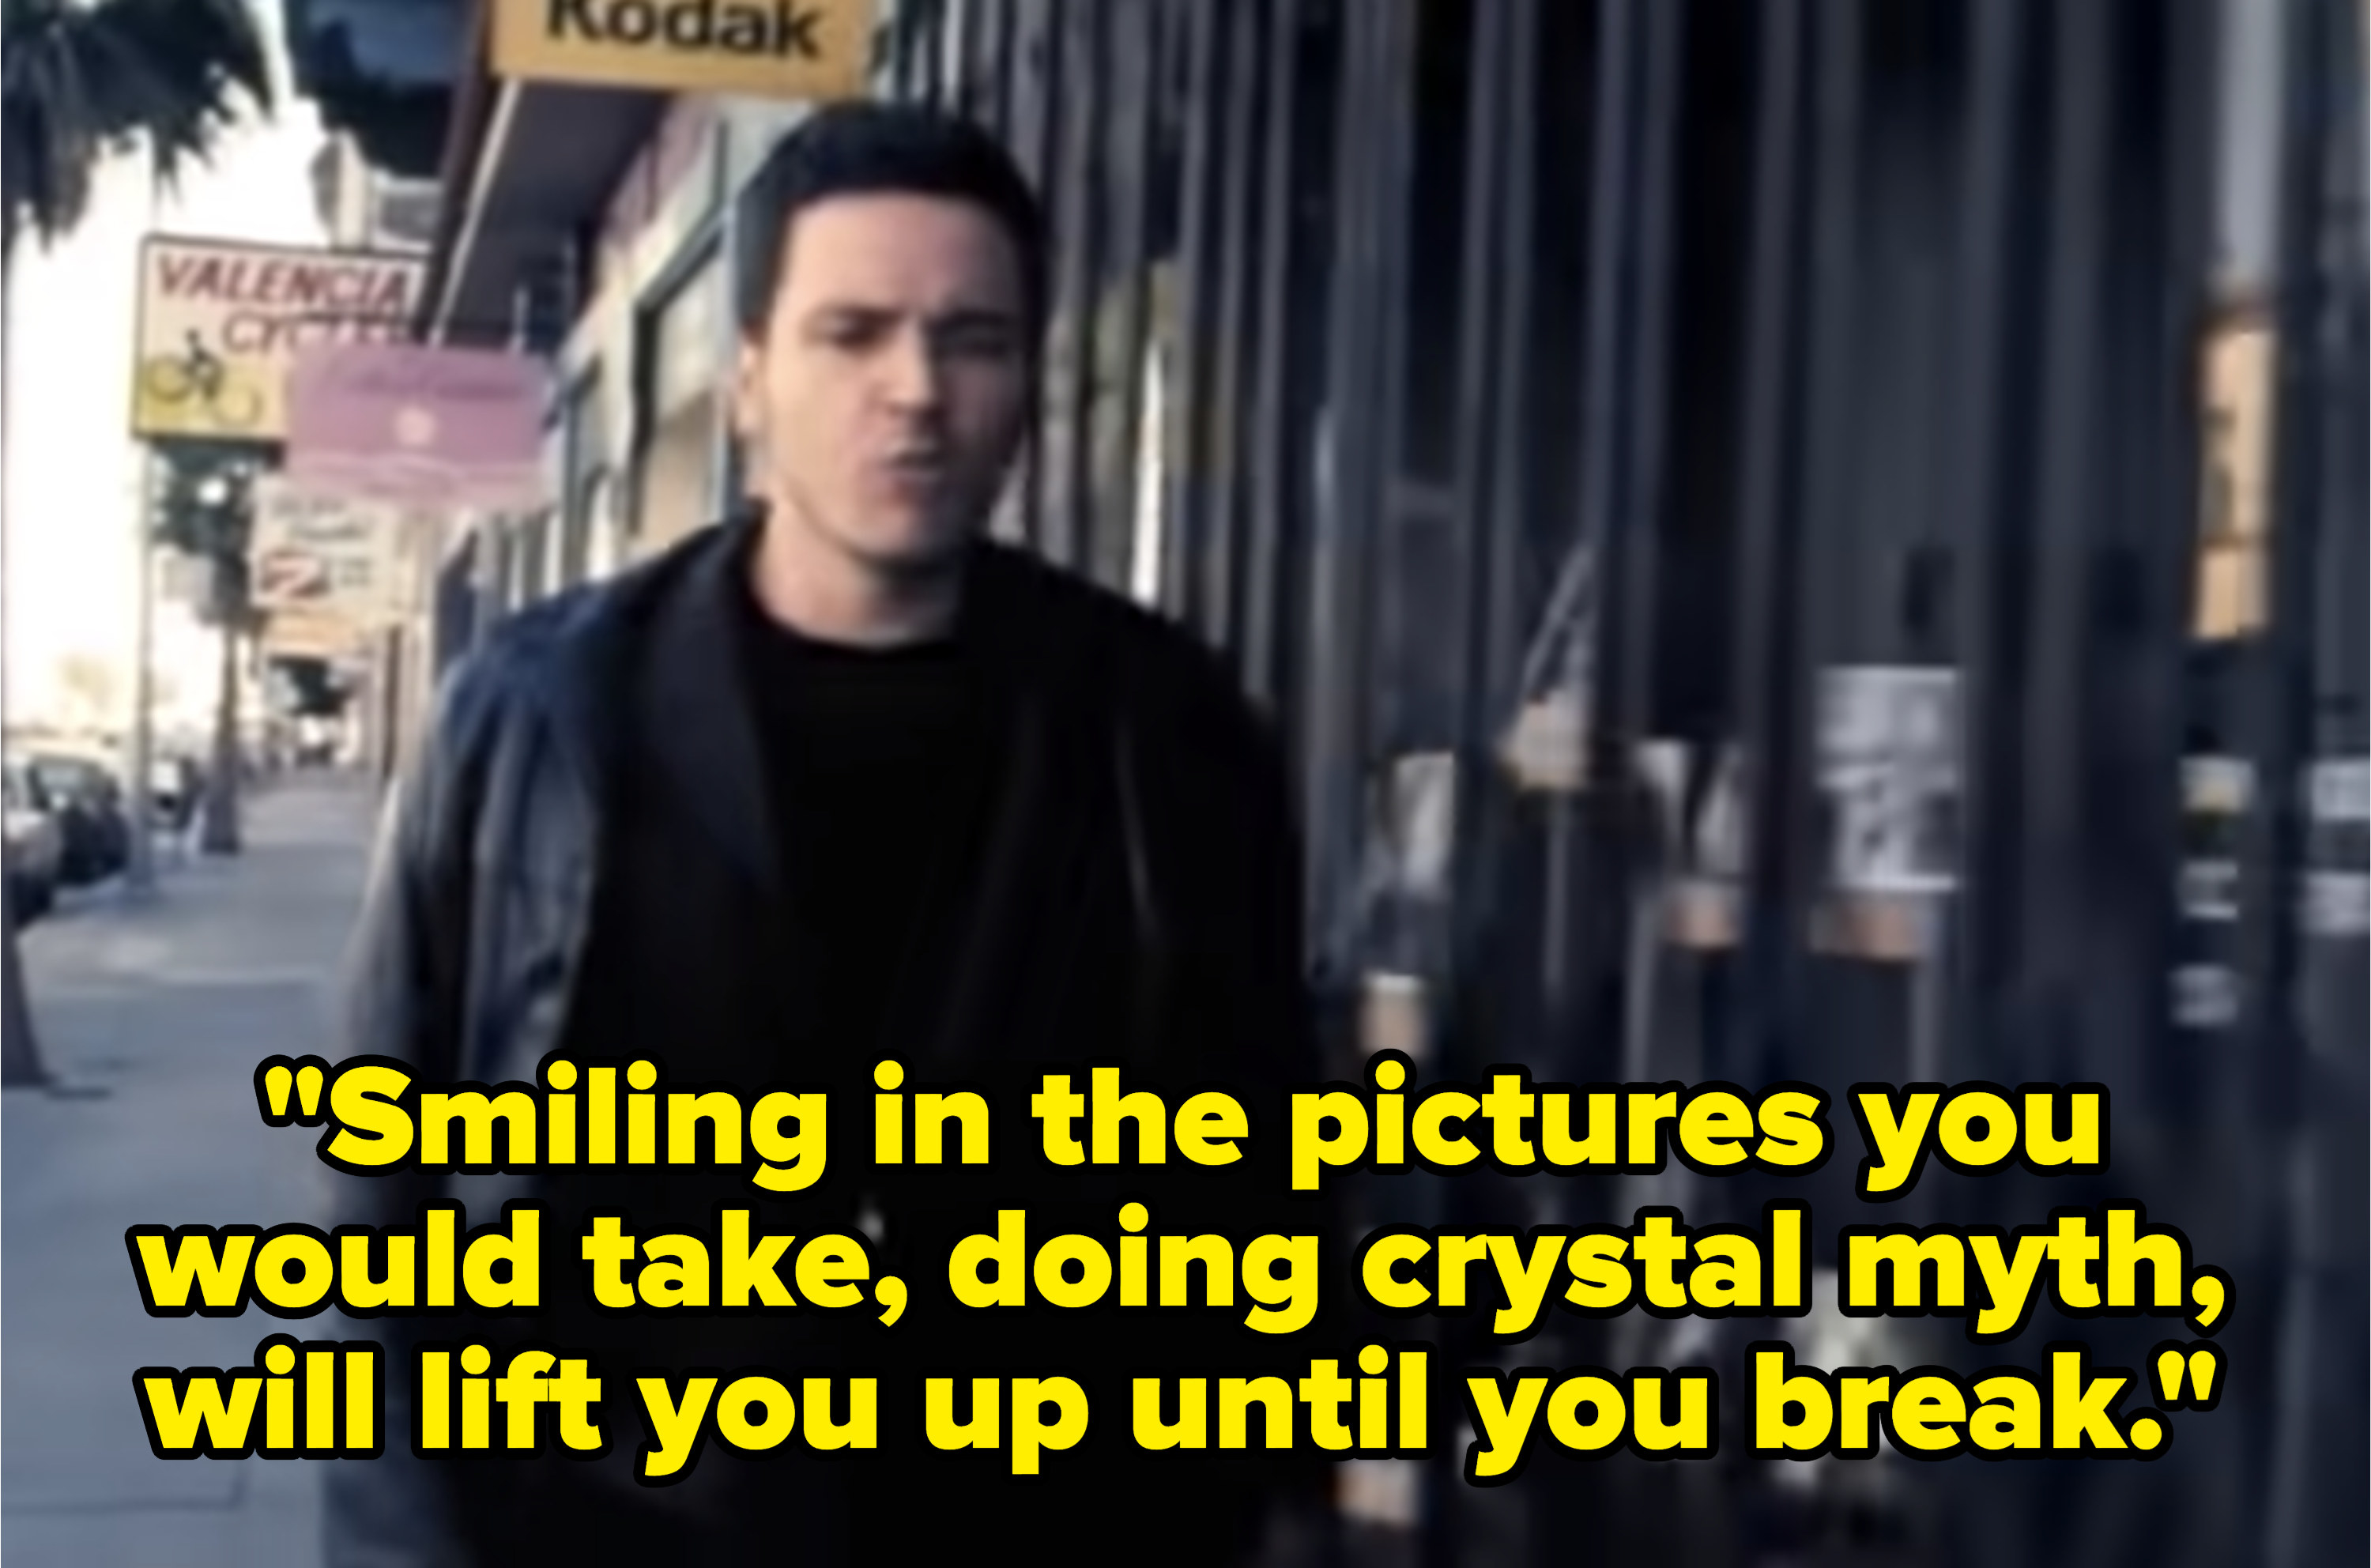 Lyrics: Smiling in the pictures you would take, doing crystal myth, will lift you up until you break